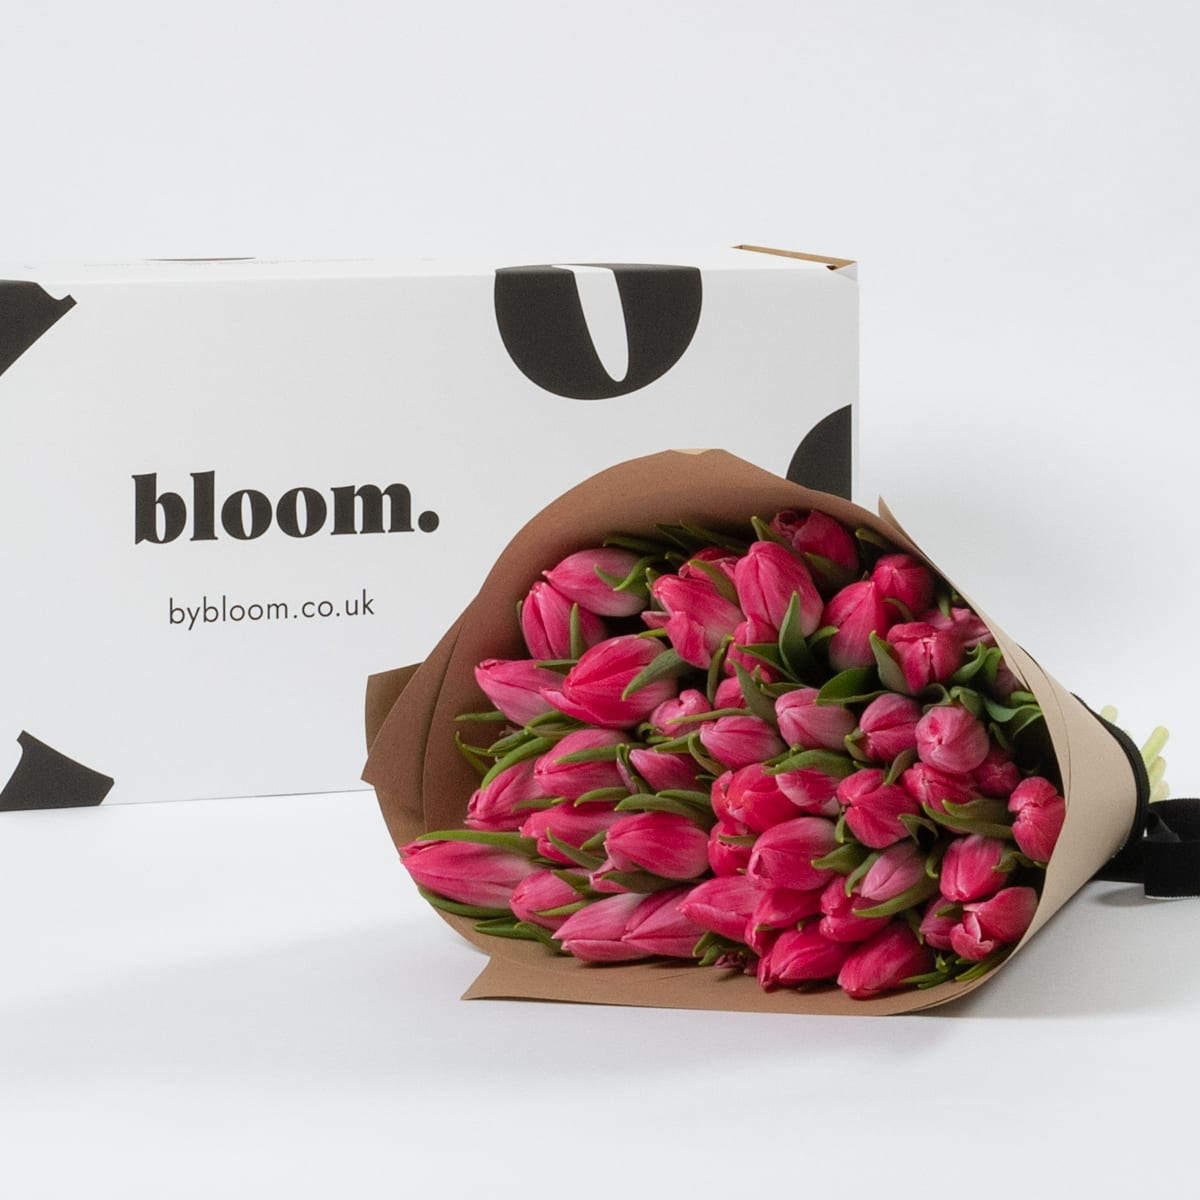 Bloom Flower Delivery | Cerise Pink Tulips